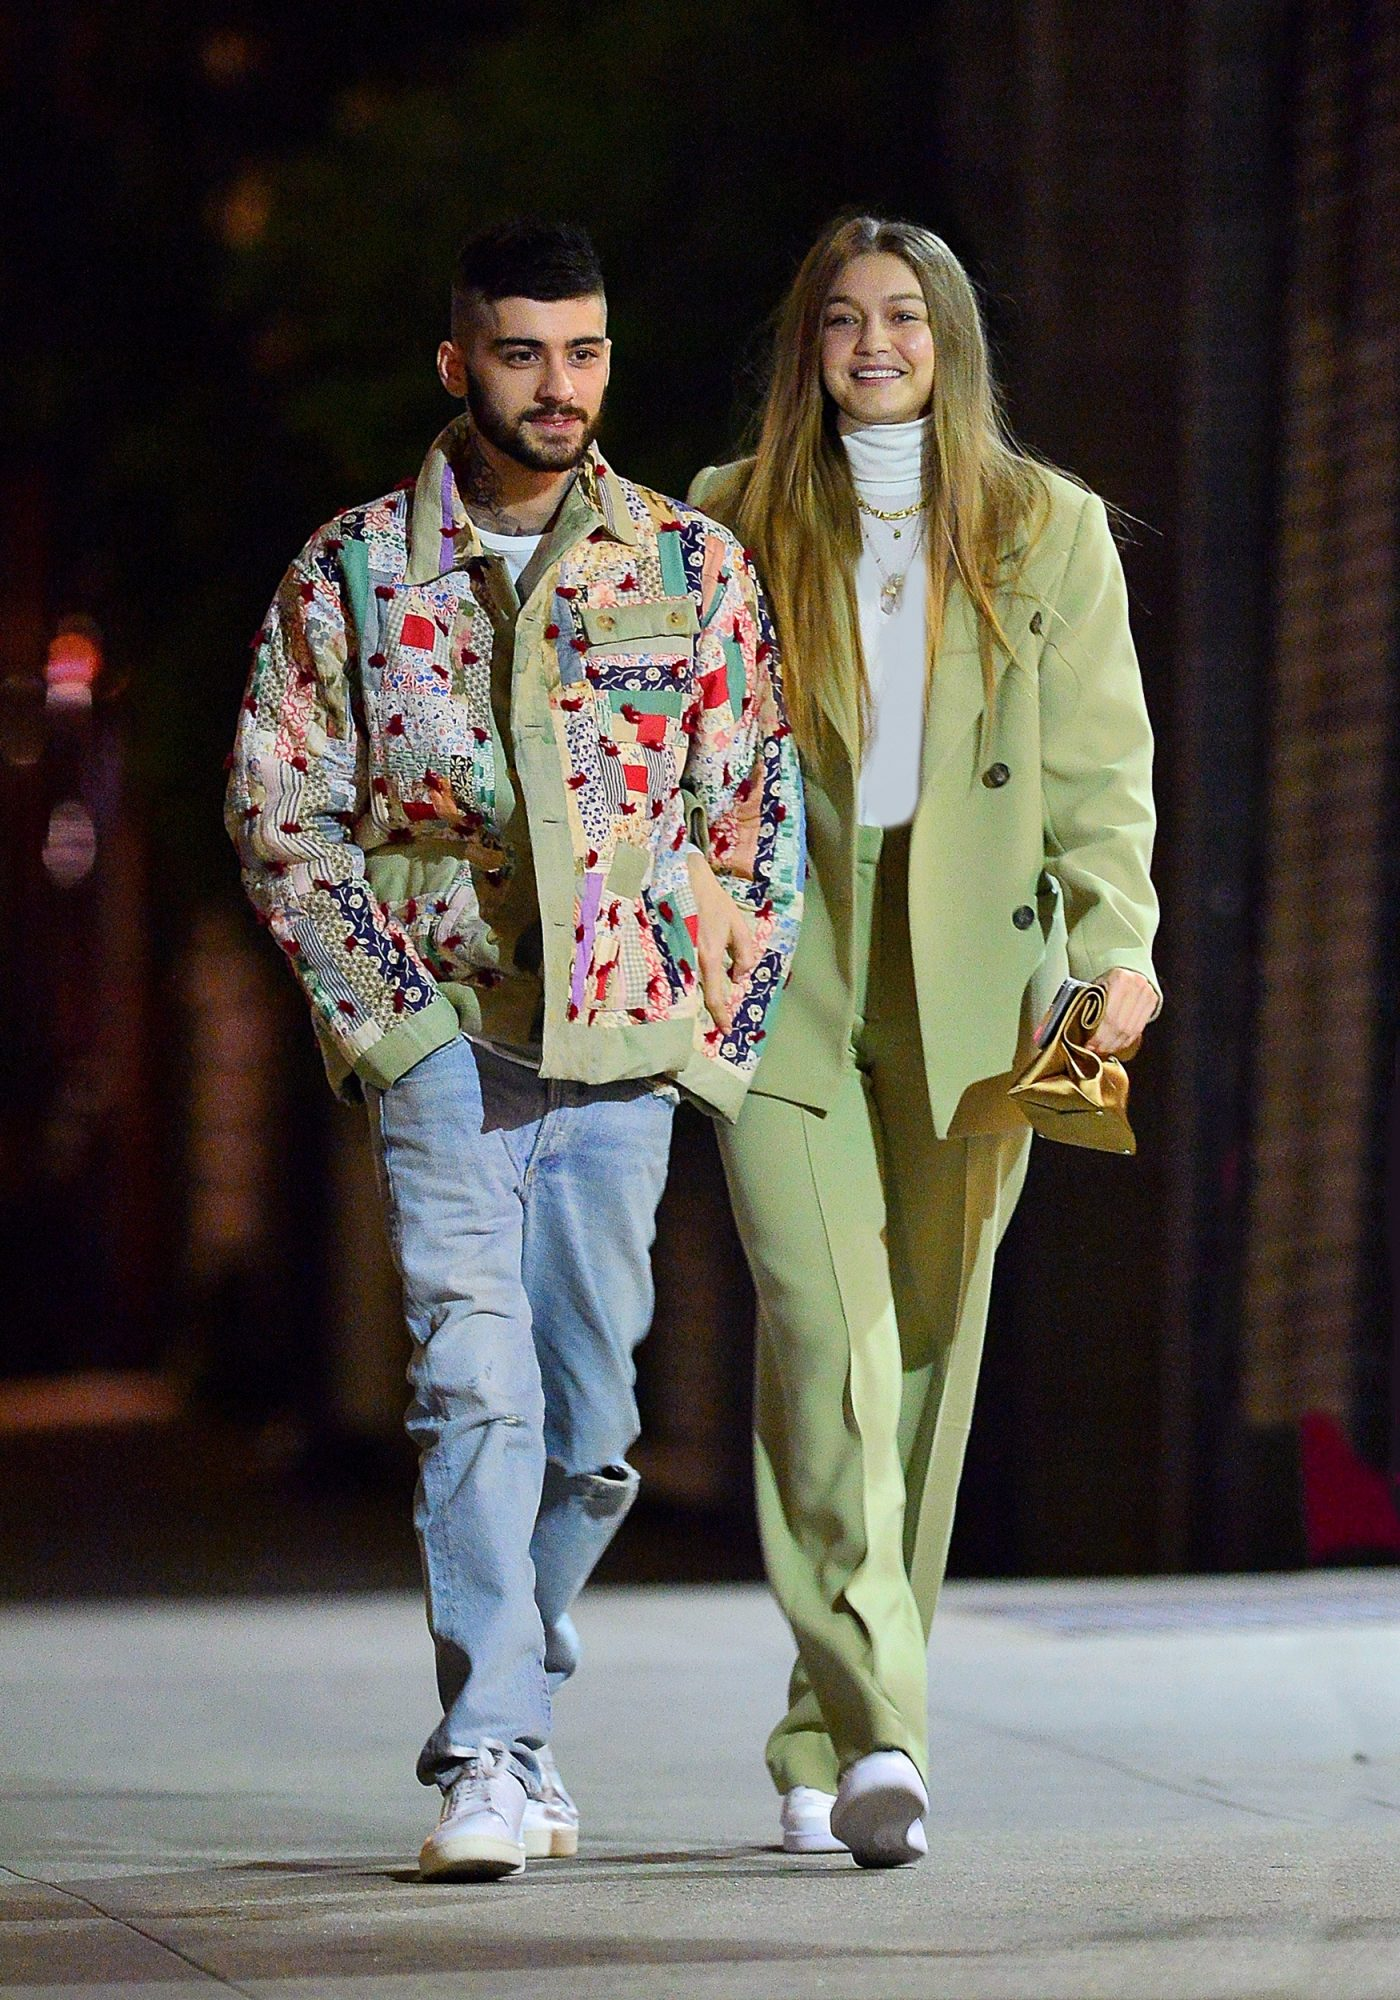 Gigi Hadid's Date Night Purse Is Giving Me High School Cafeteria Nostalgia